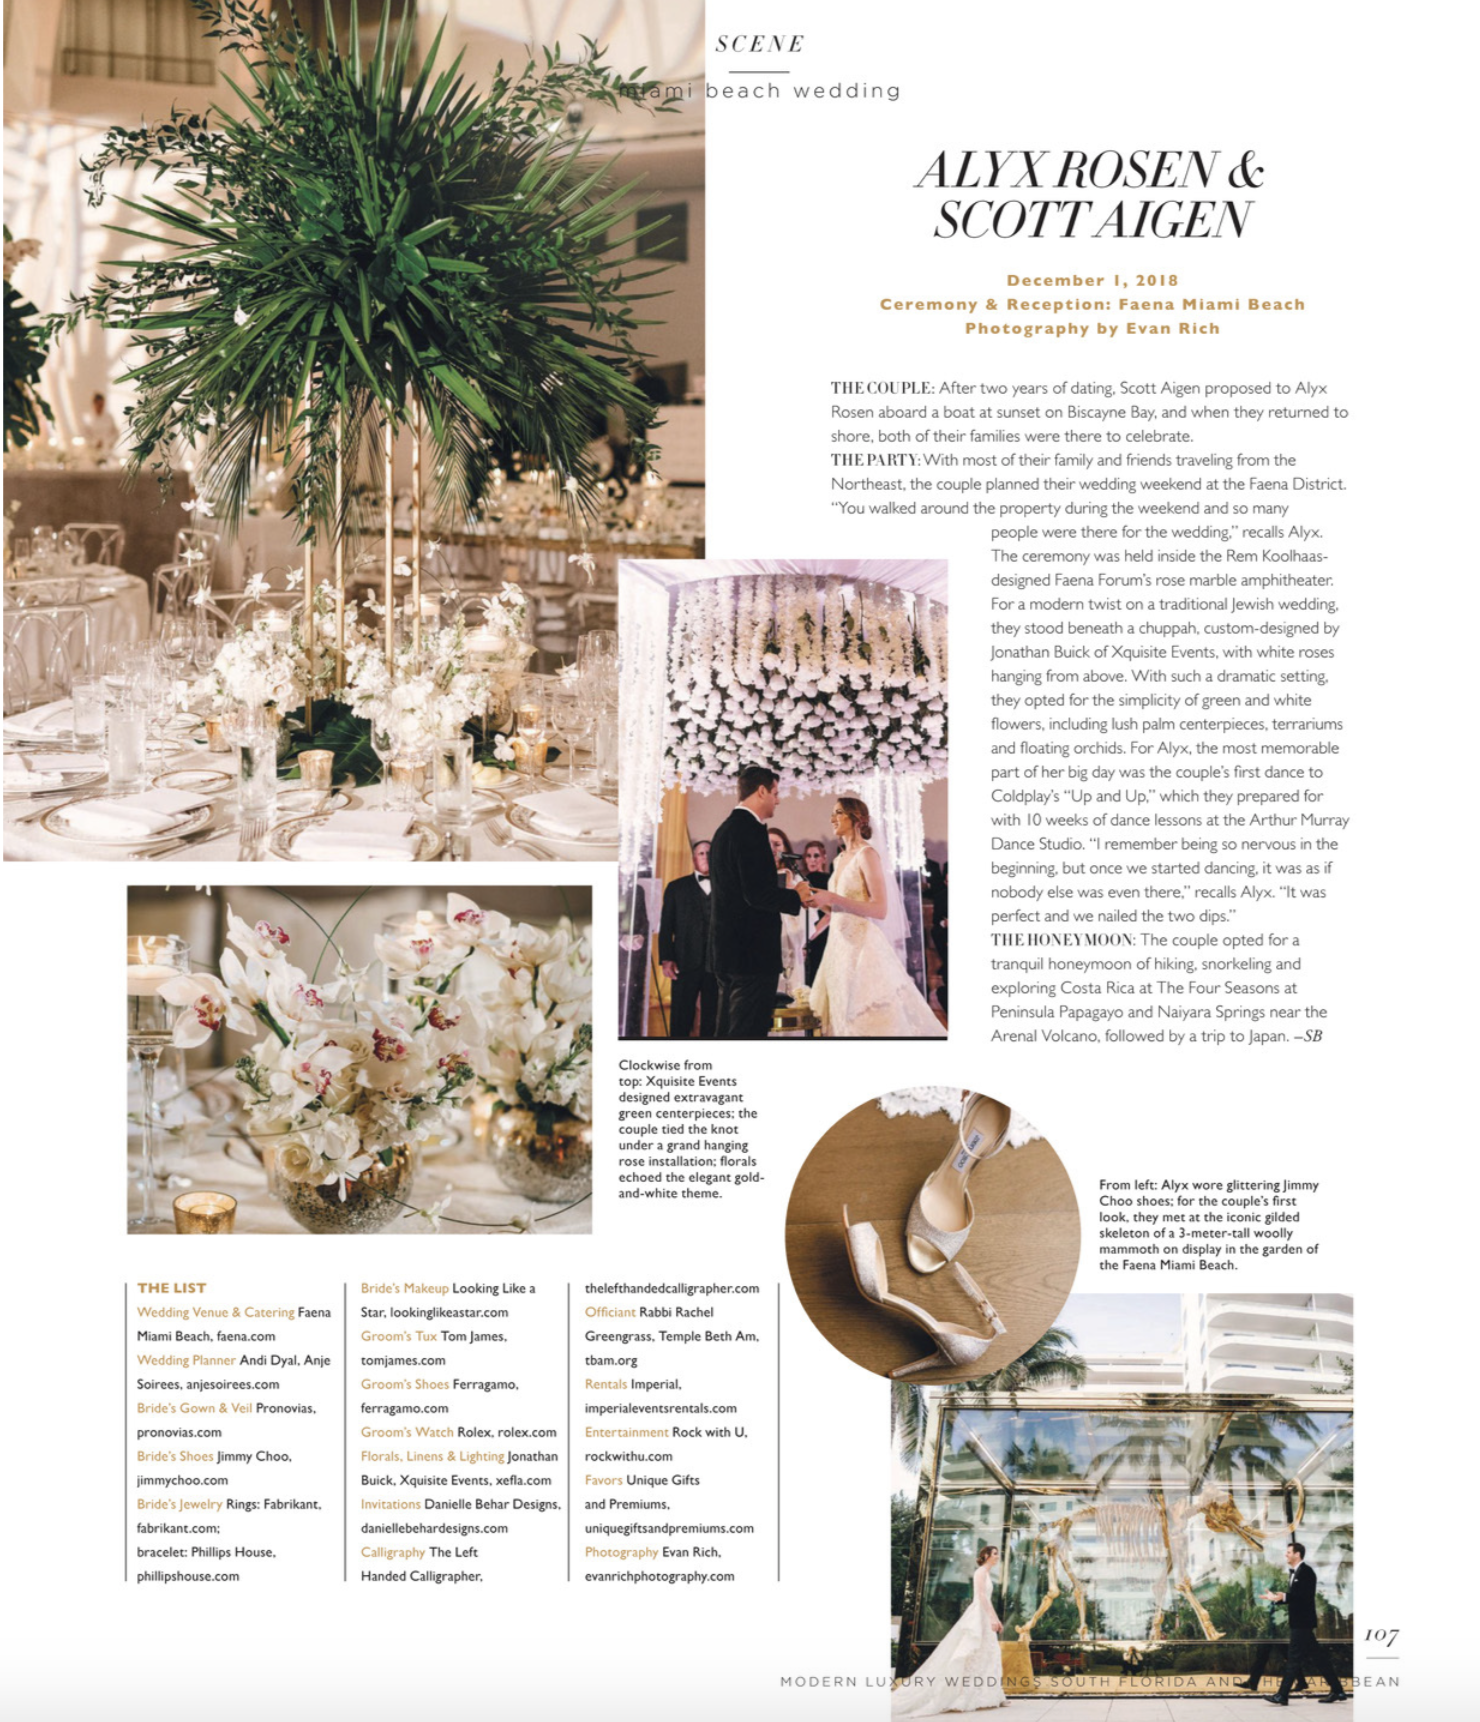 Alyx & Scott's wedding was featured in Modern Luxury Weddings. Check it out!